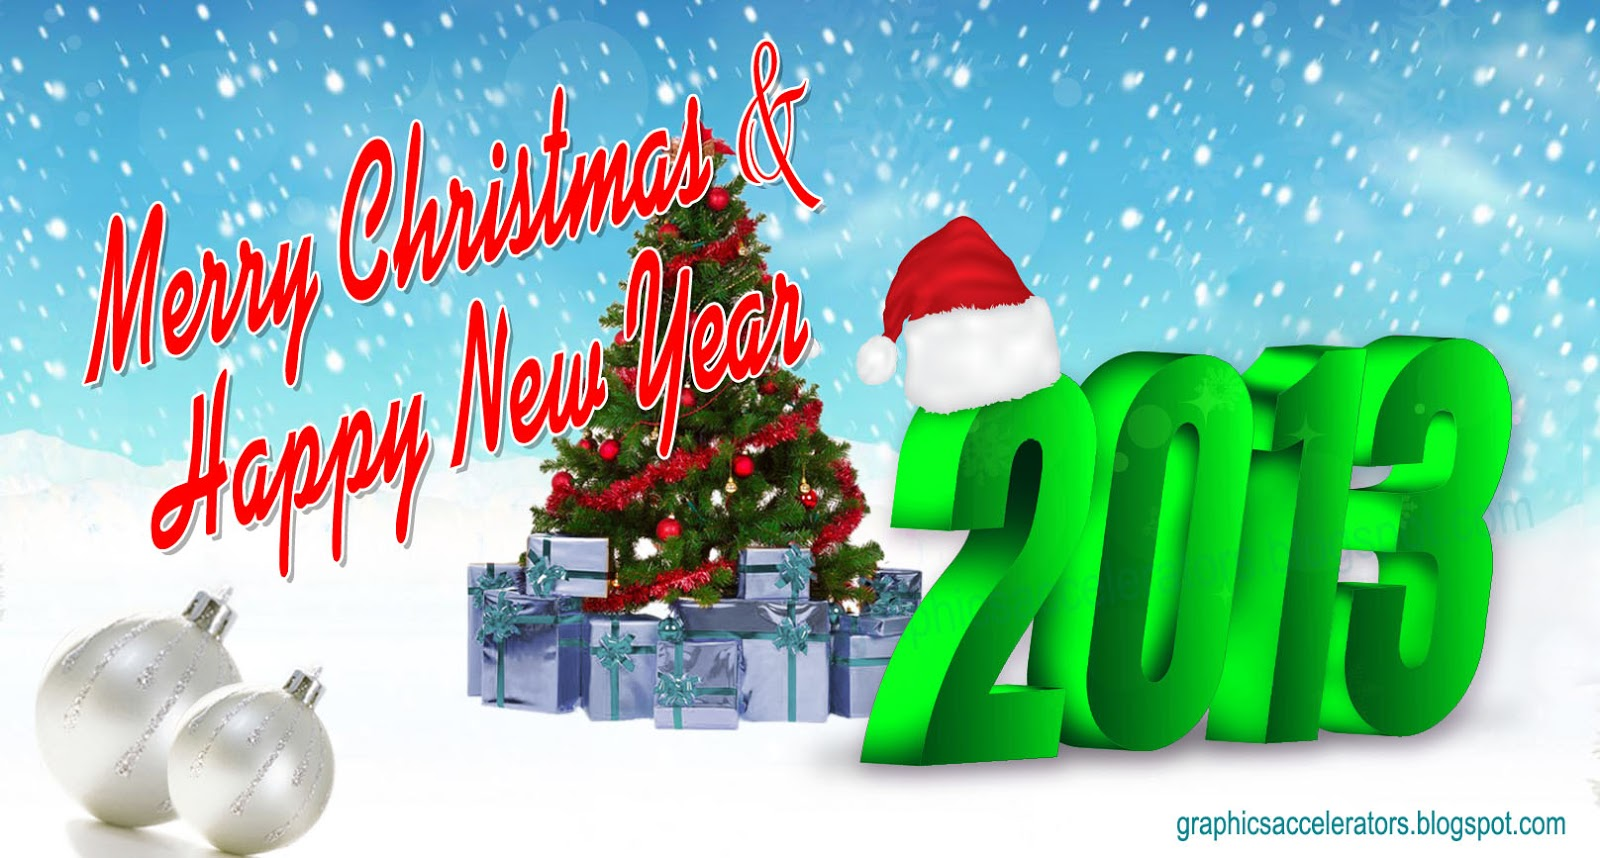 Merry Christmas amp a Happy New Year to all our forum members. 1600 x 858.Happy New Year Images Advance